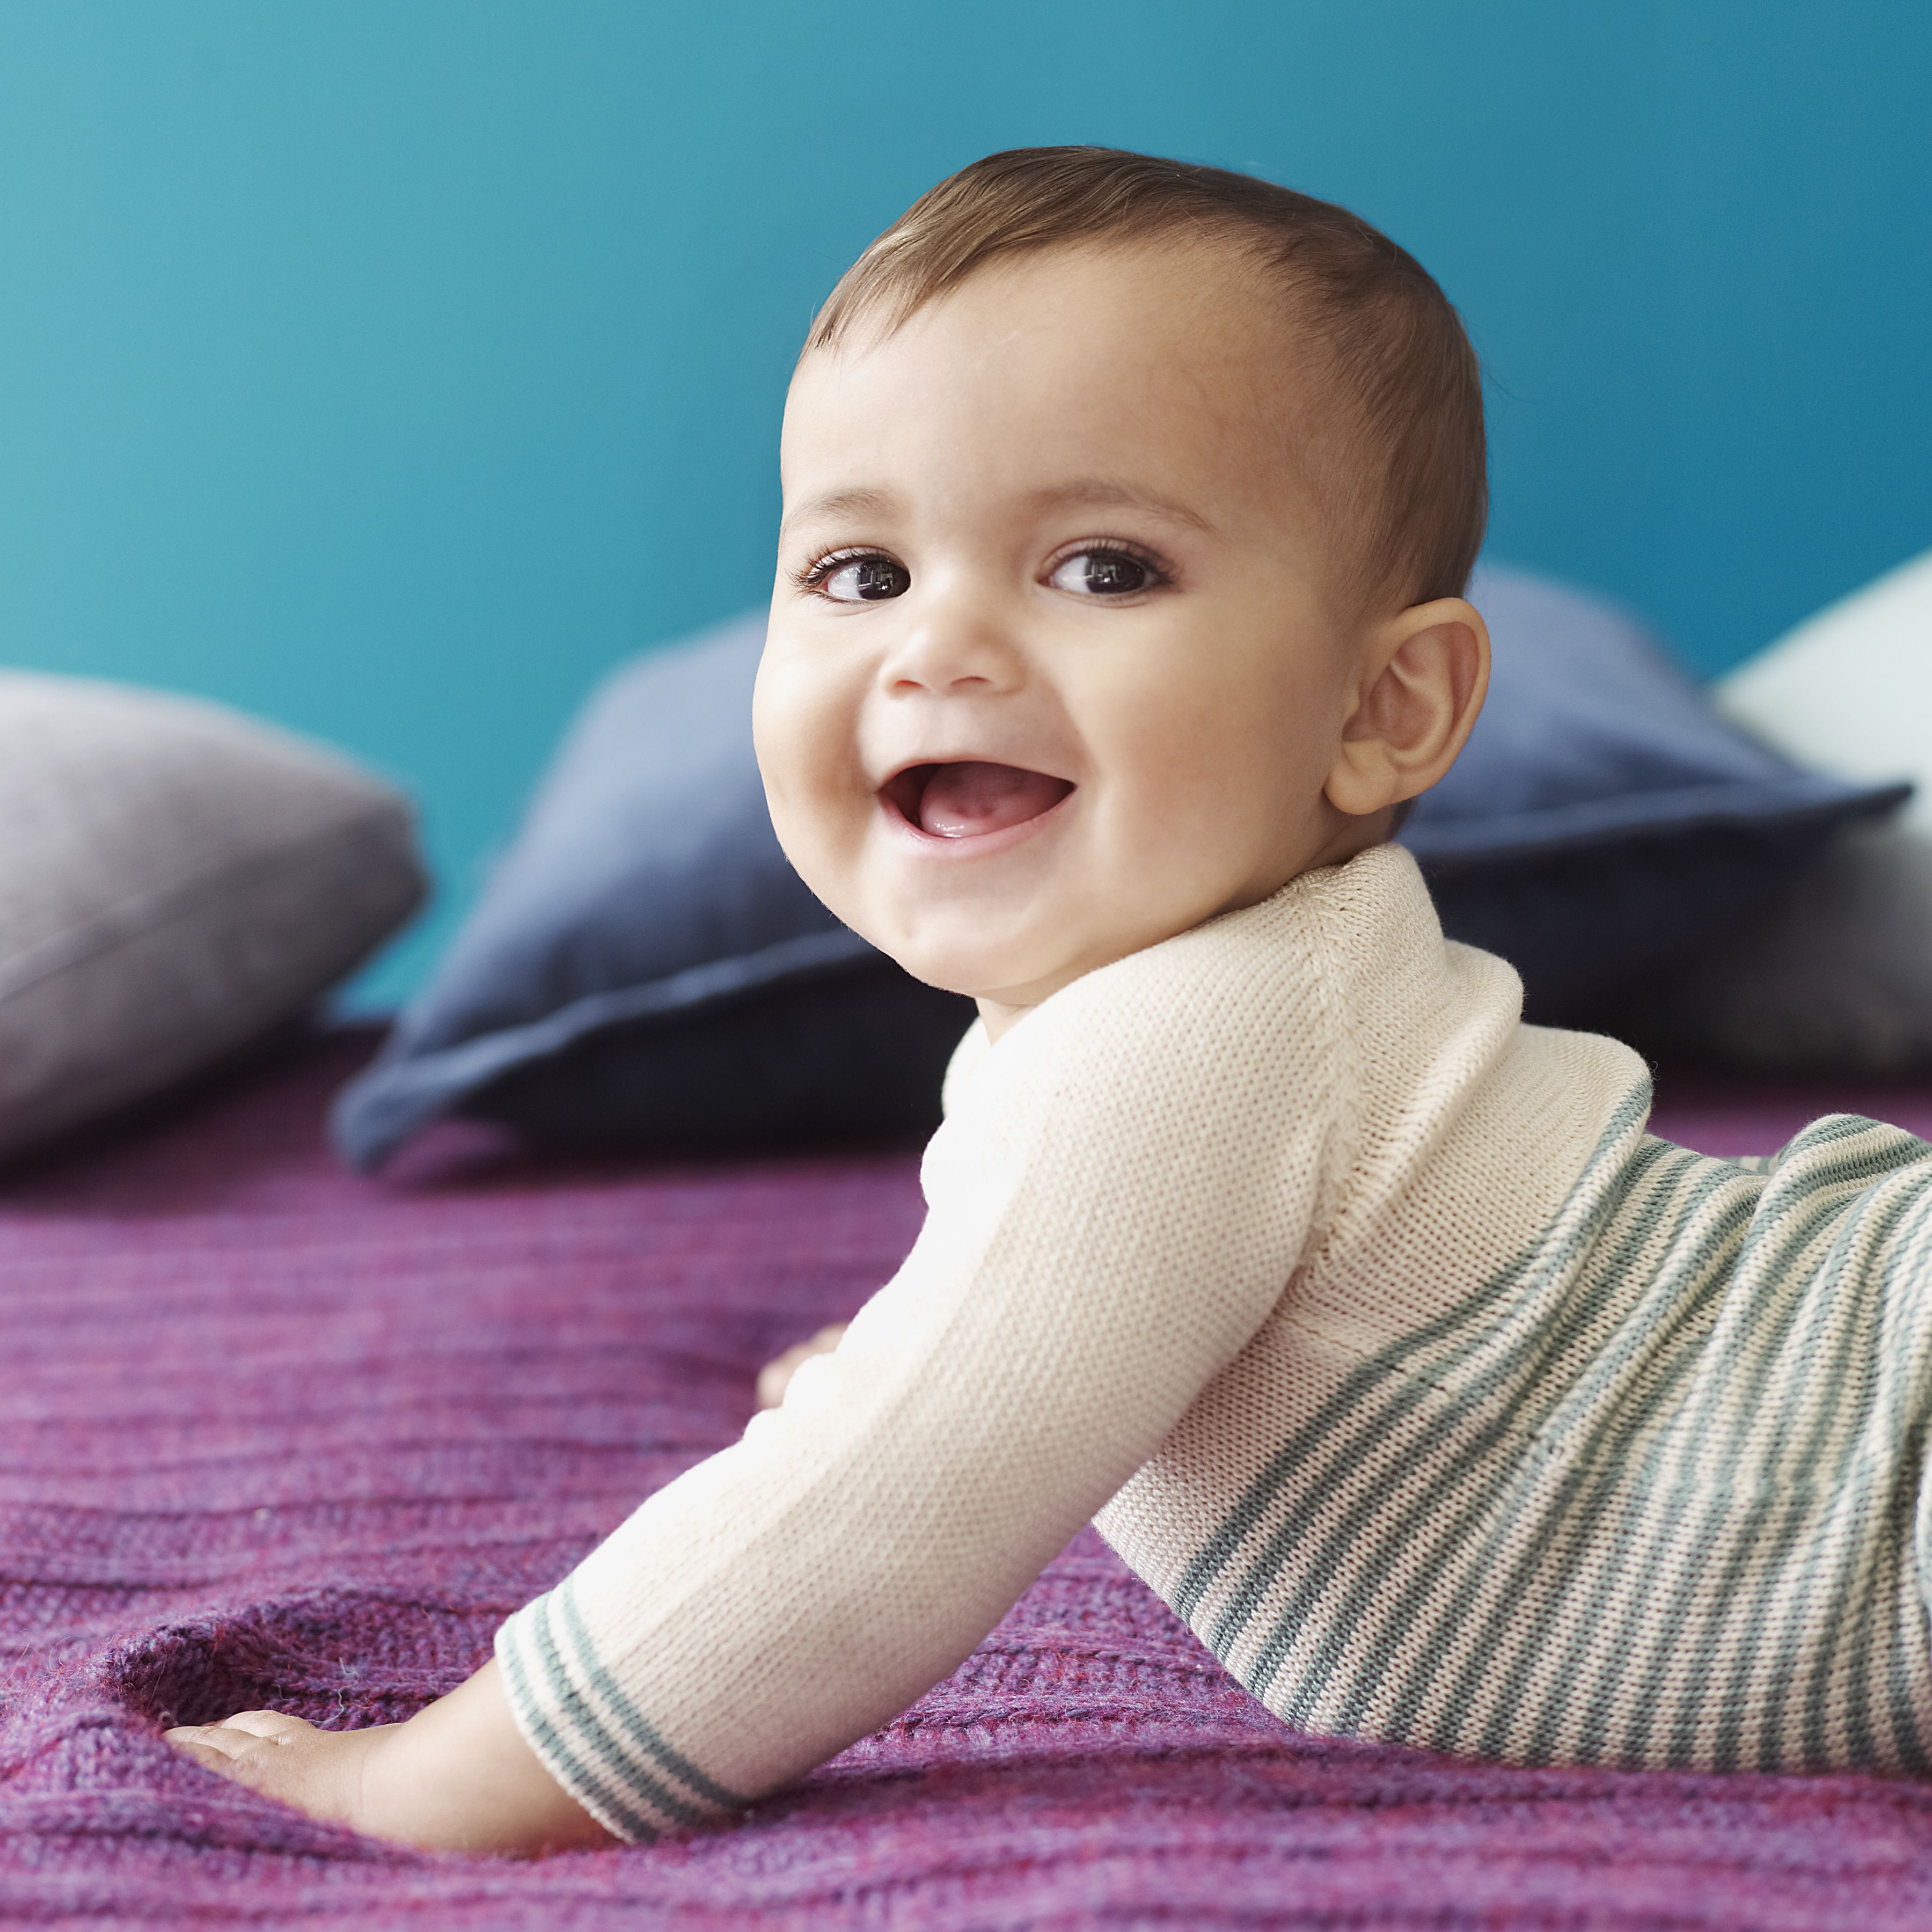 c2a6705d556e August-Born Baby Facts - Personality Traits of August Babies